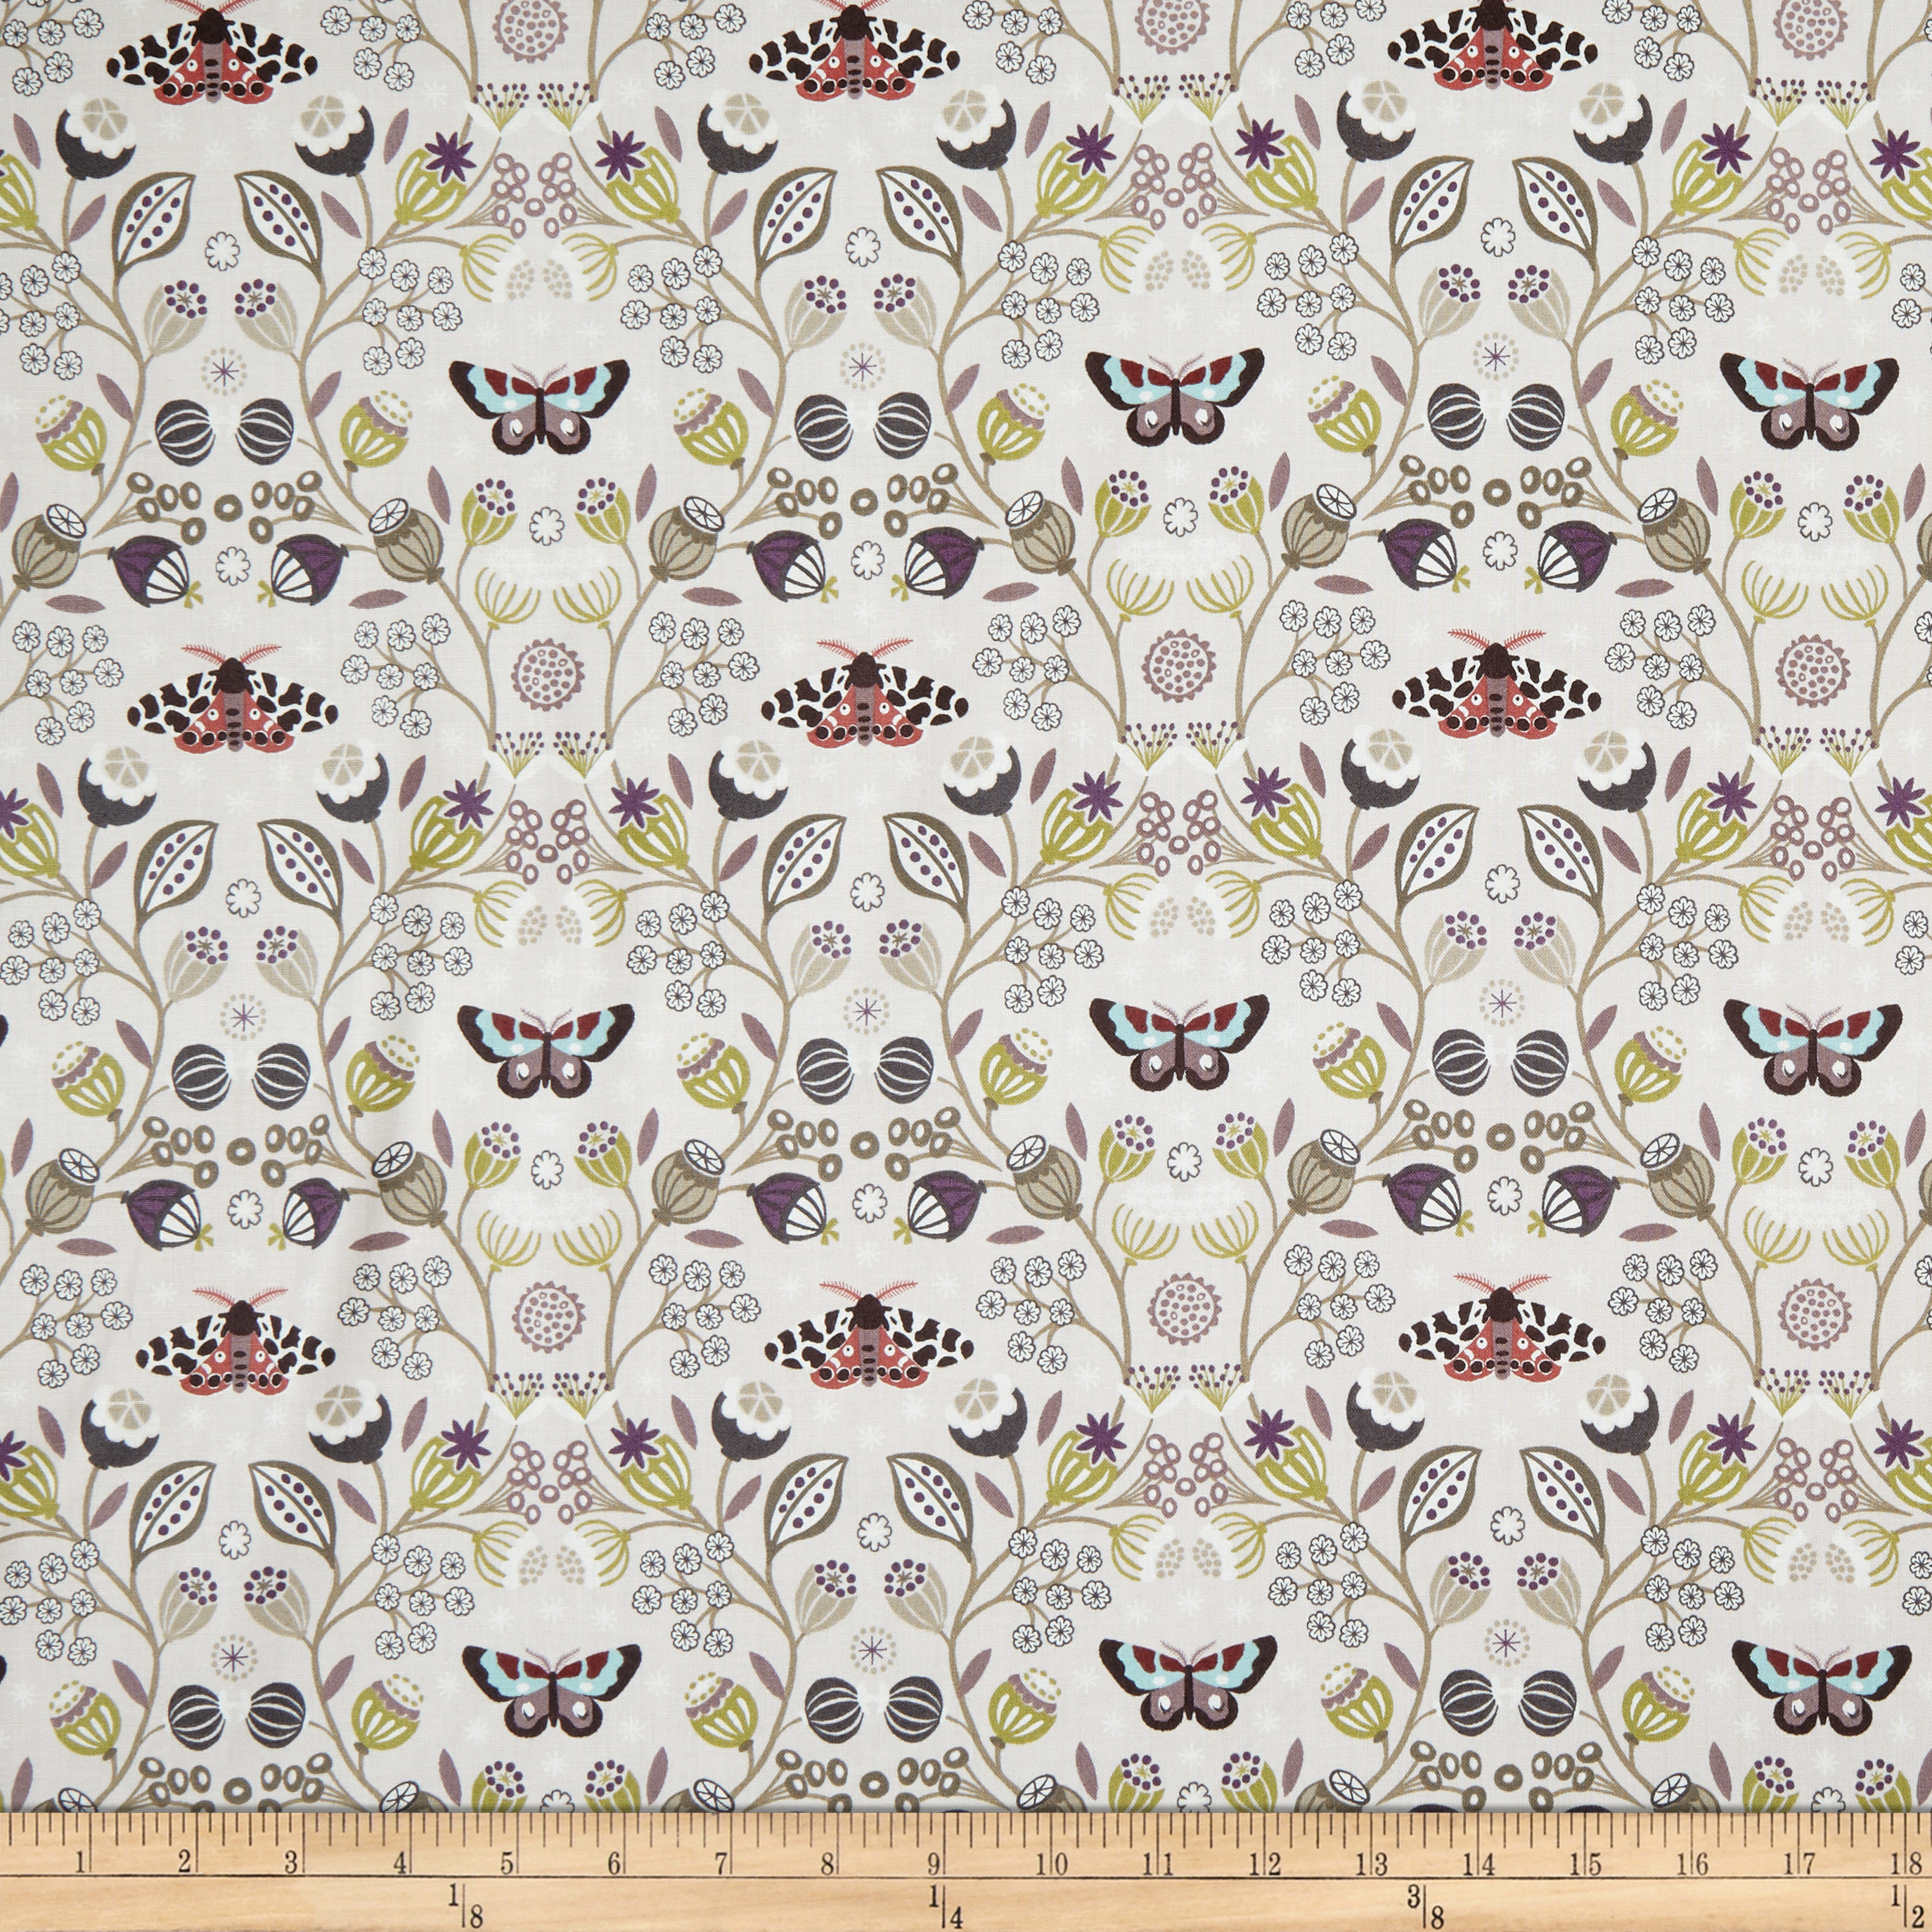 INOpets.com Anything for Pets Parents & Their Pets Lewis & Irene Winter Garden Winter Garden Natural Fabric